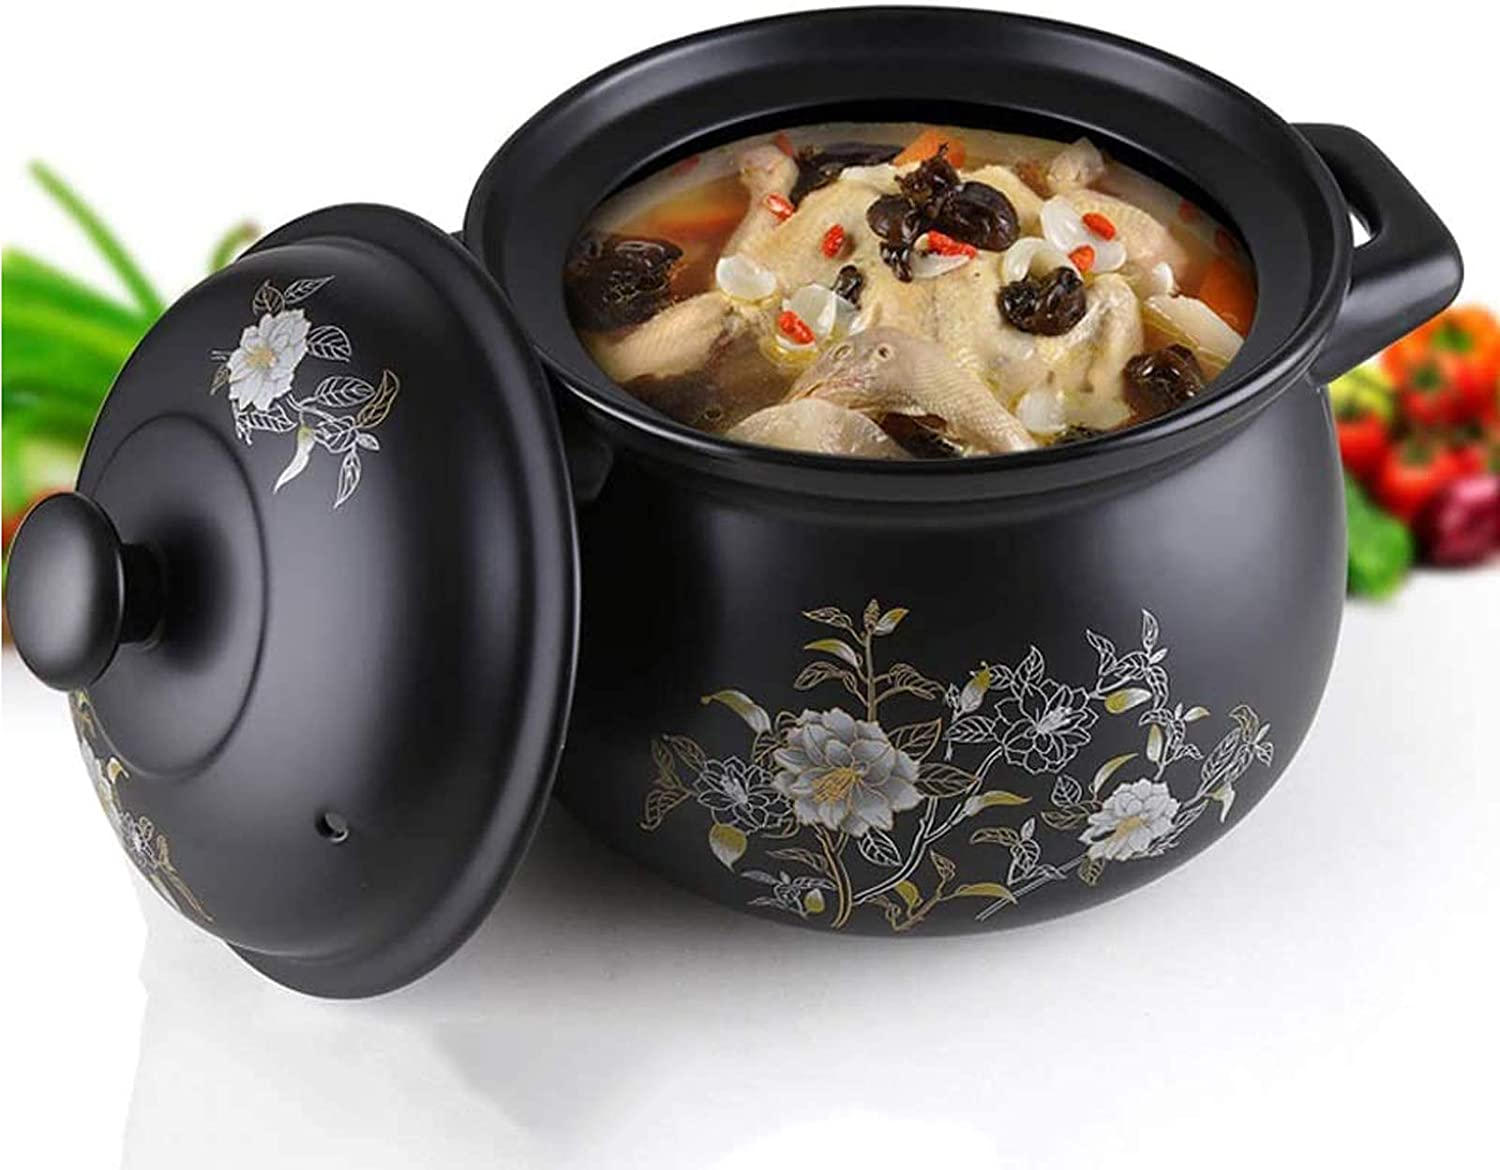 Cooking Pot, Dutch Ovens Round Casserole Dish, Stew Pot With Lid, For Home Kitchens